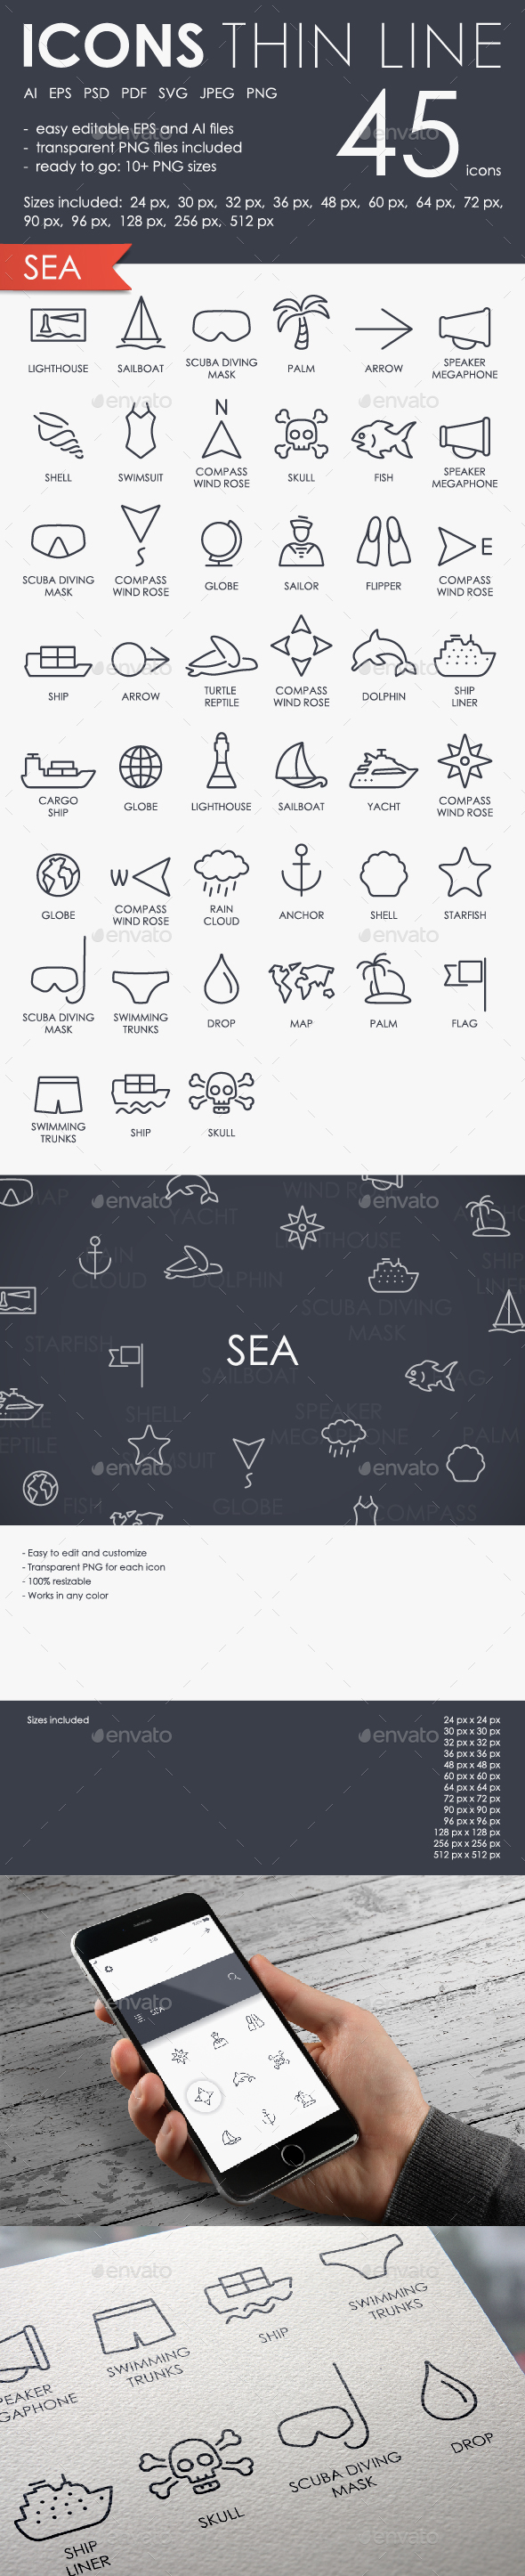 Sea thinline icons - Icons